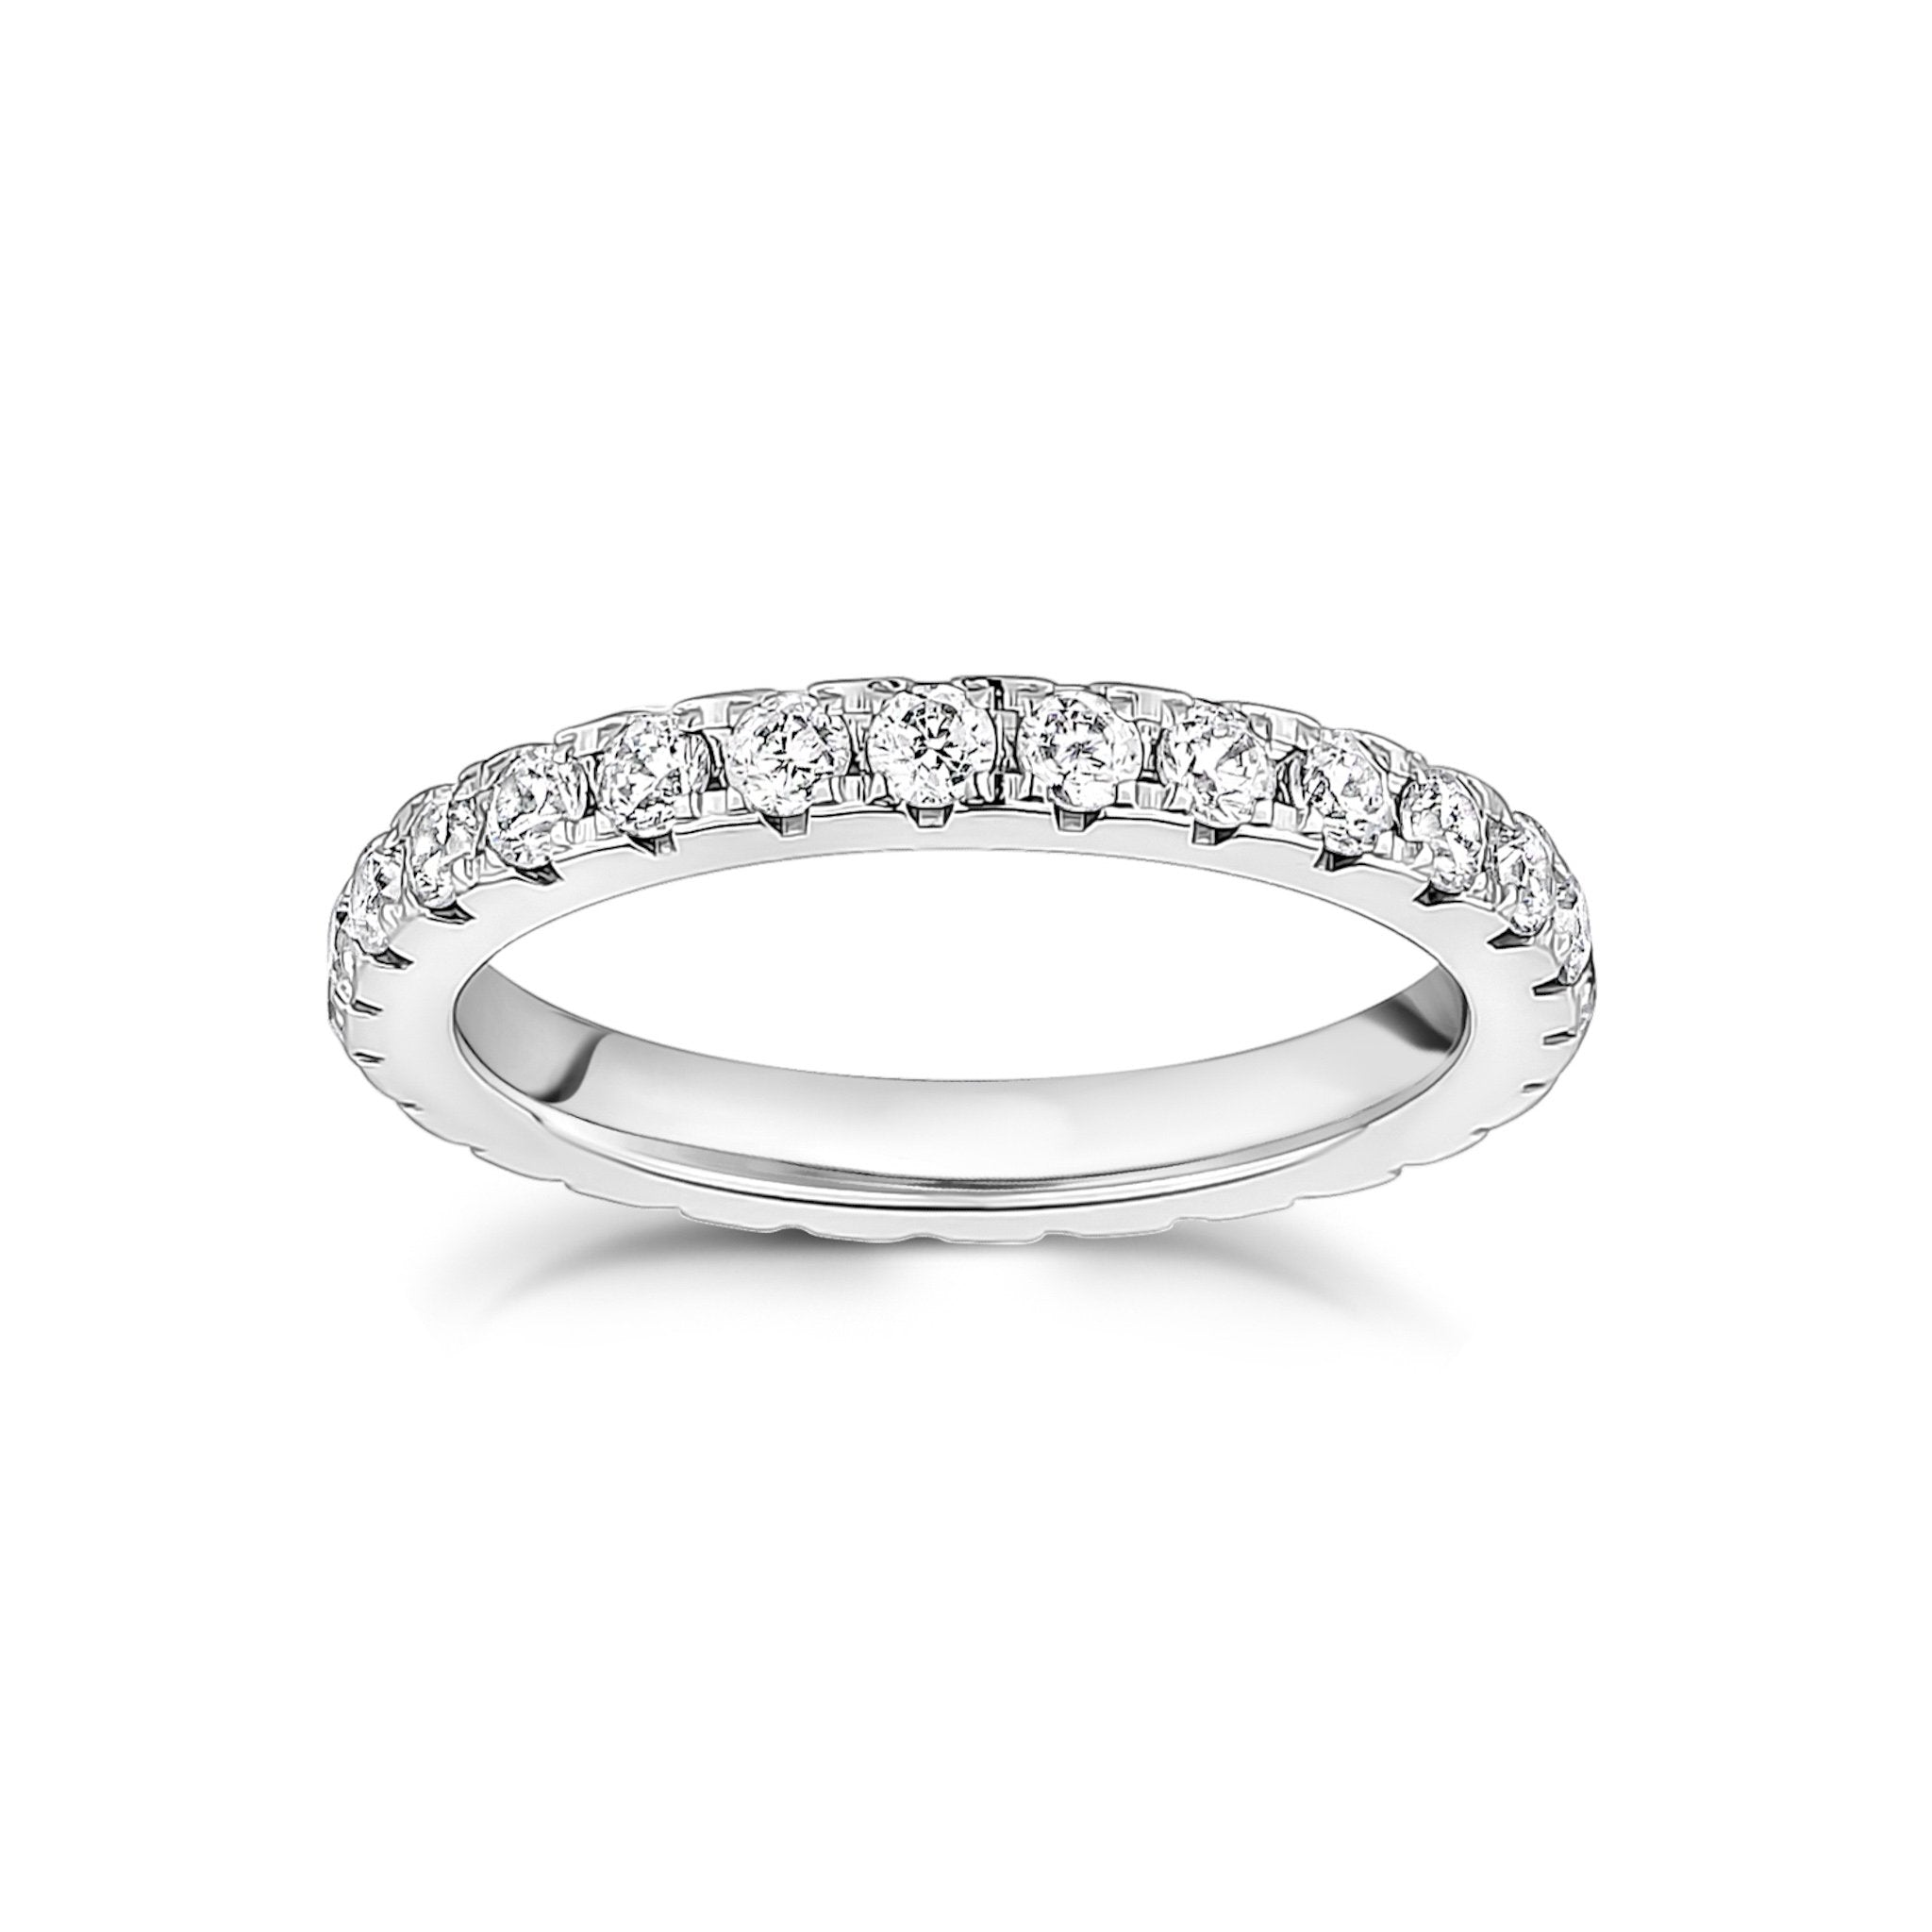 Women Ring - 2.5mm Cubic Zircon Stainless Steel Eternity Band